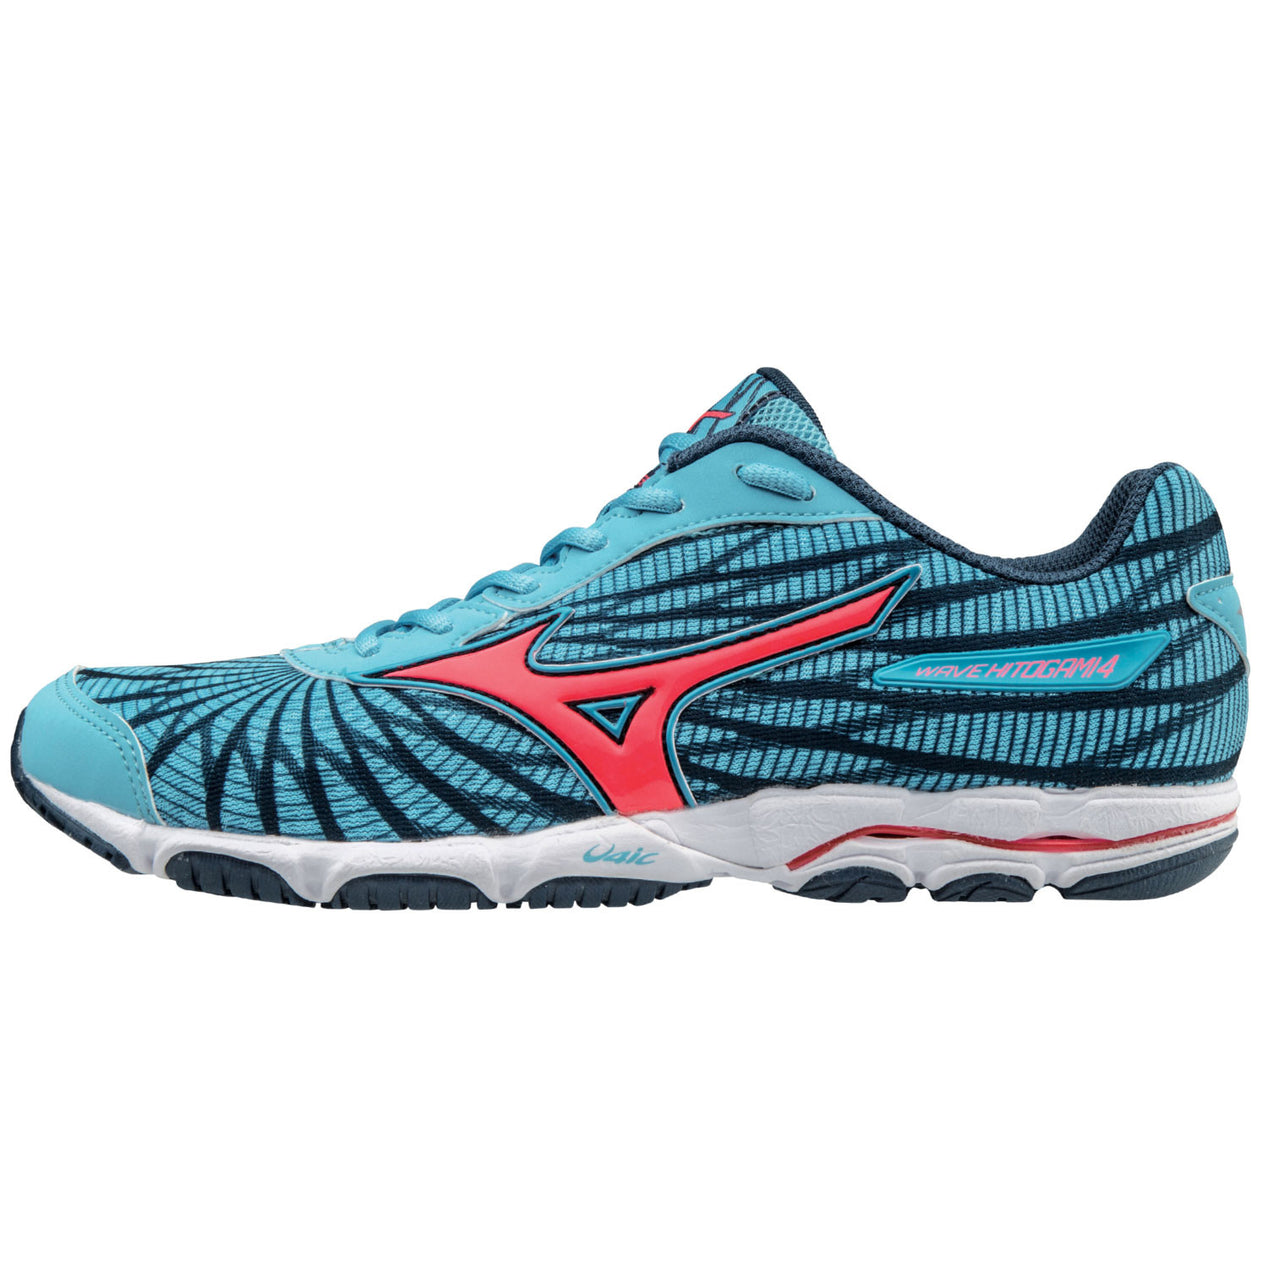 reputable site 332d1 25cf5 Mizuno Women's Wave Hitogami 4 Running Shoes